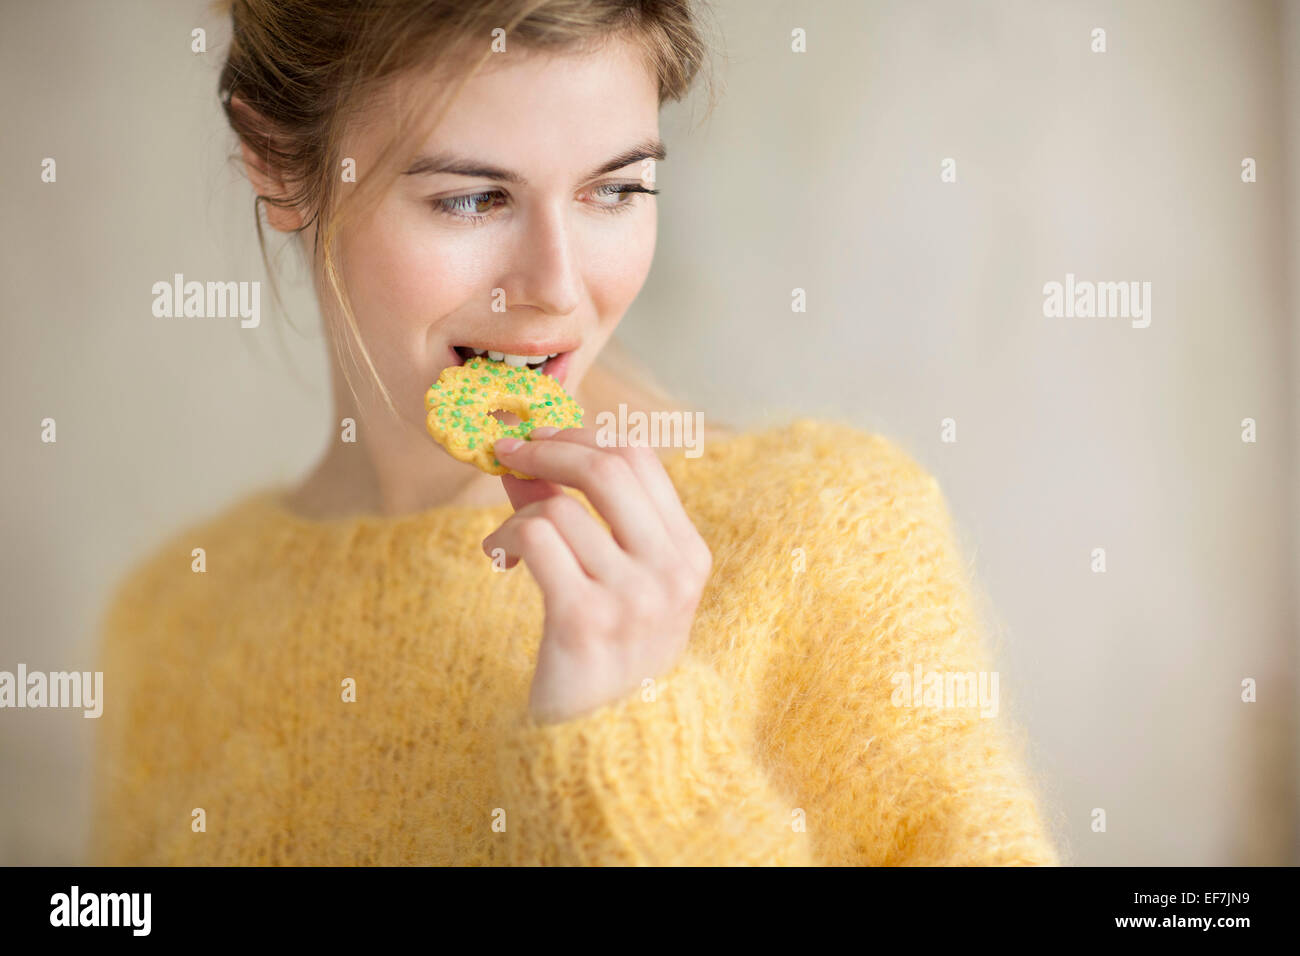 Woman eating a cookie - Stock Image